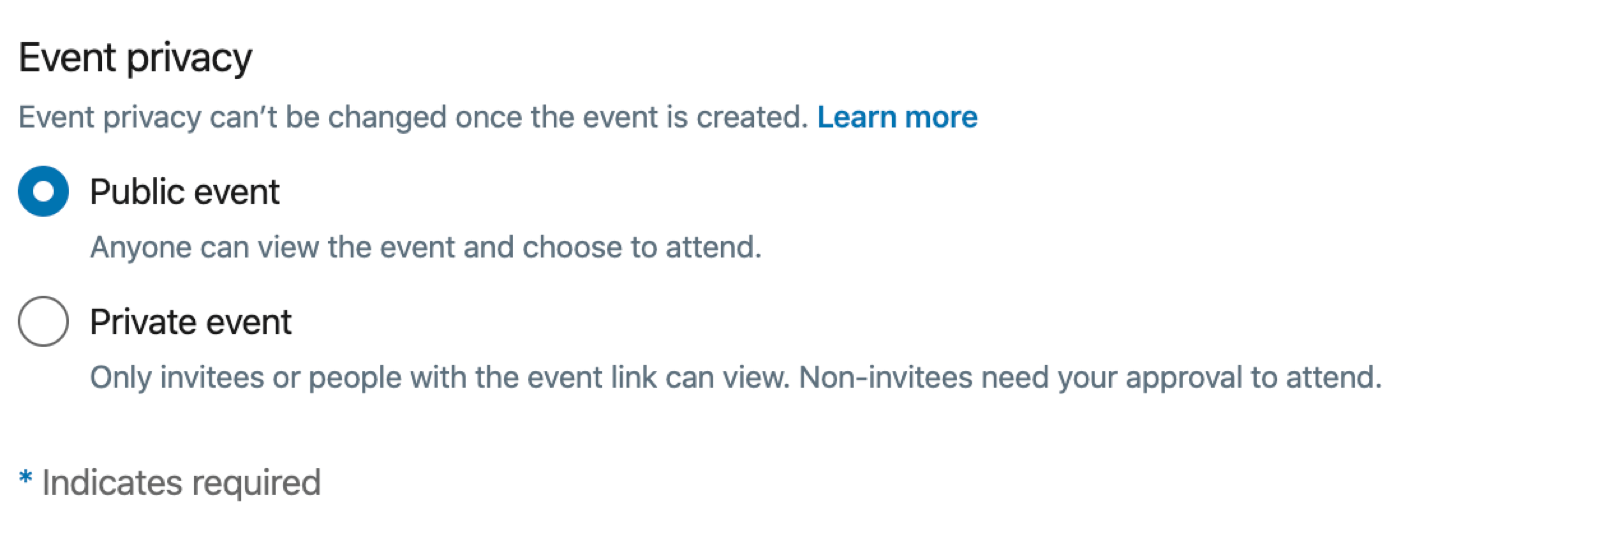 Event Privacy options for LinkedIn event